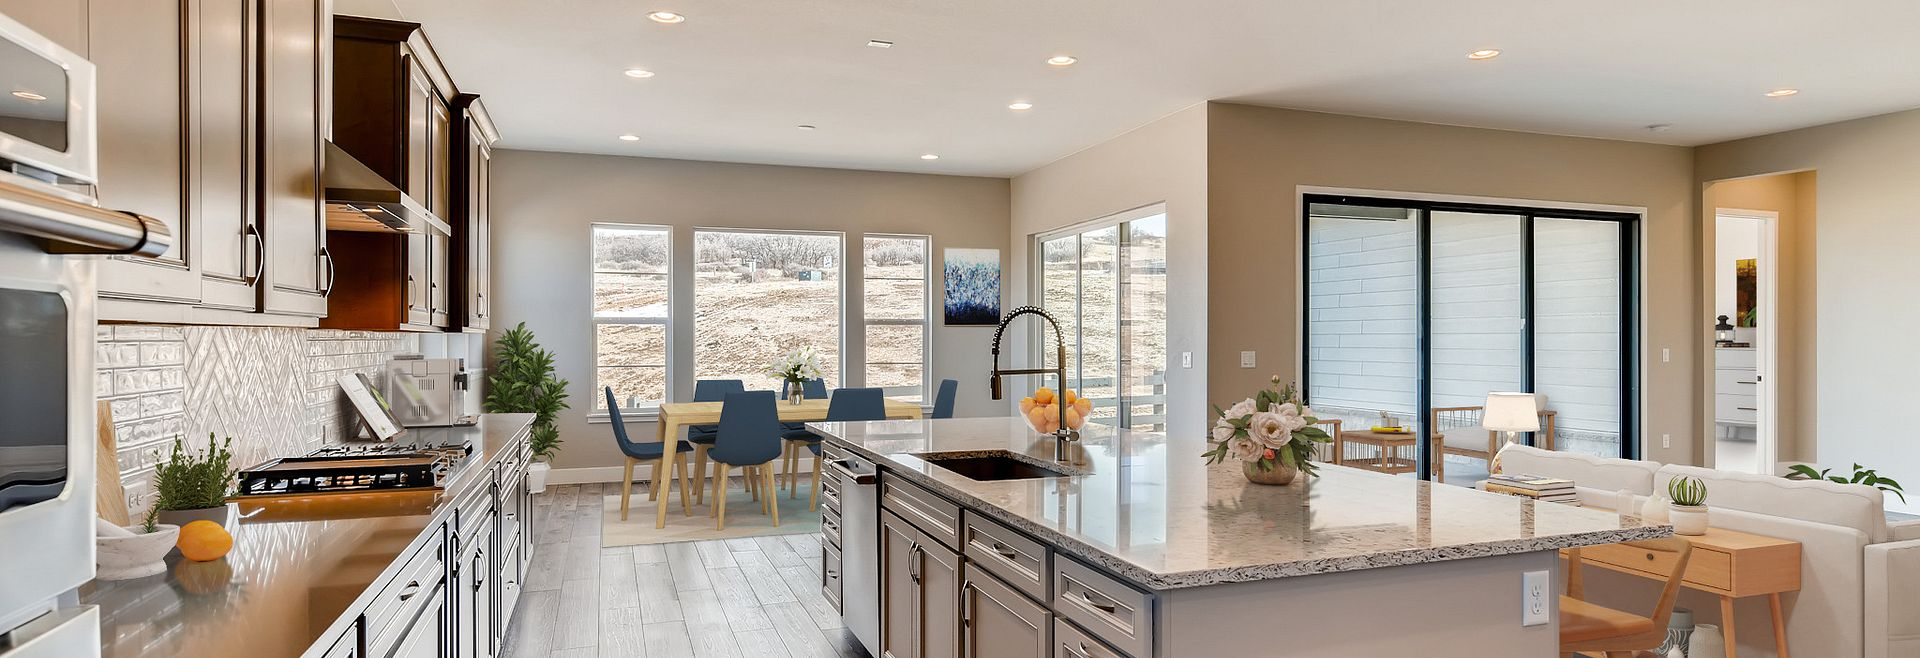 Canyons Luxe Belcourt Kitchen, Great Room & Dining